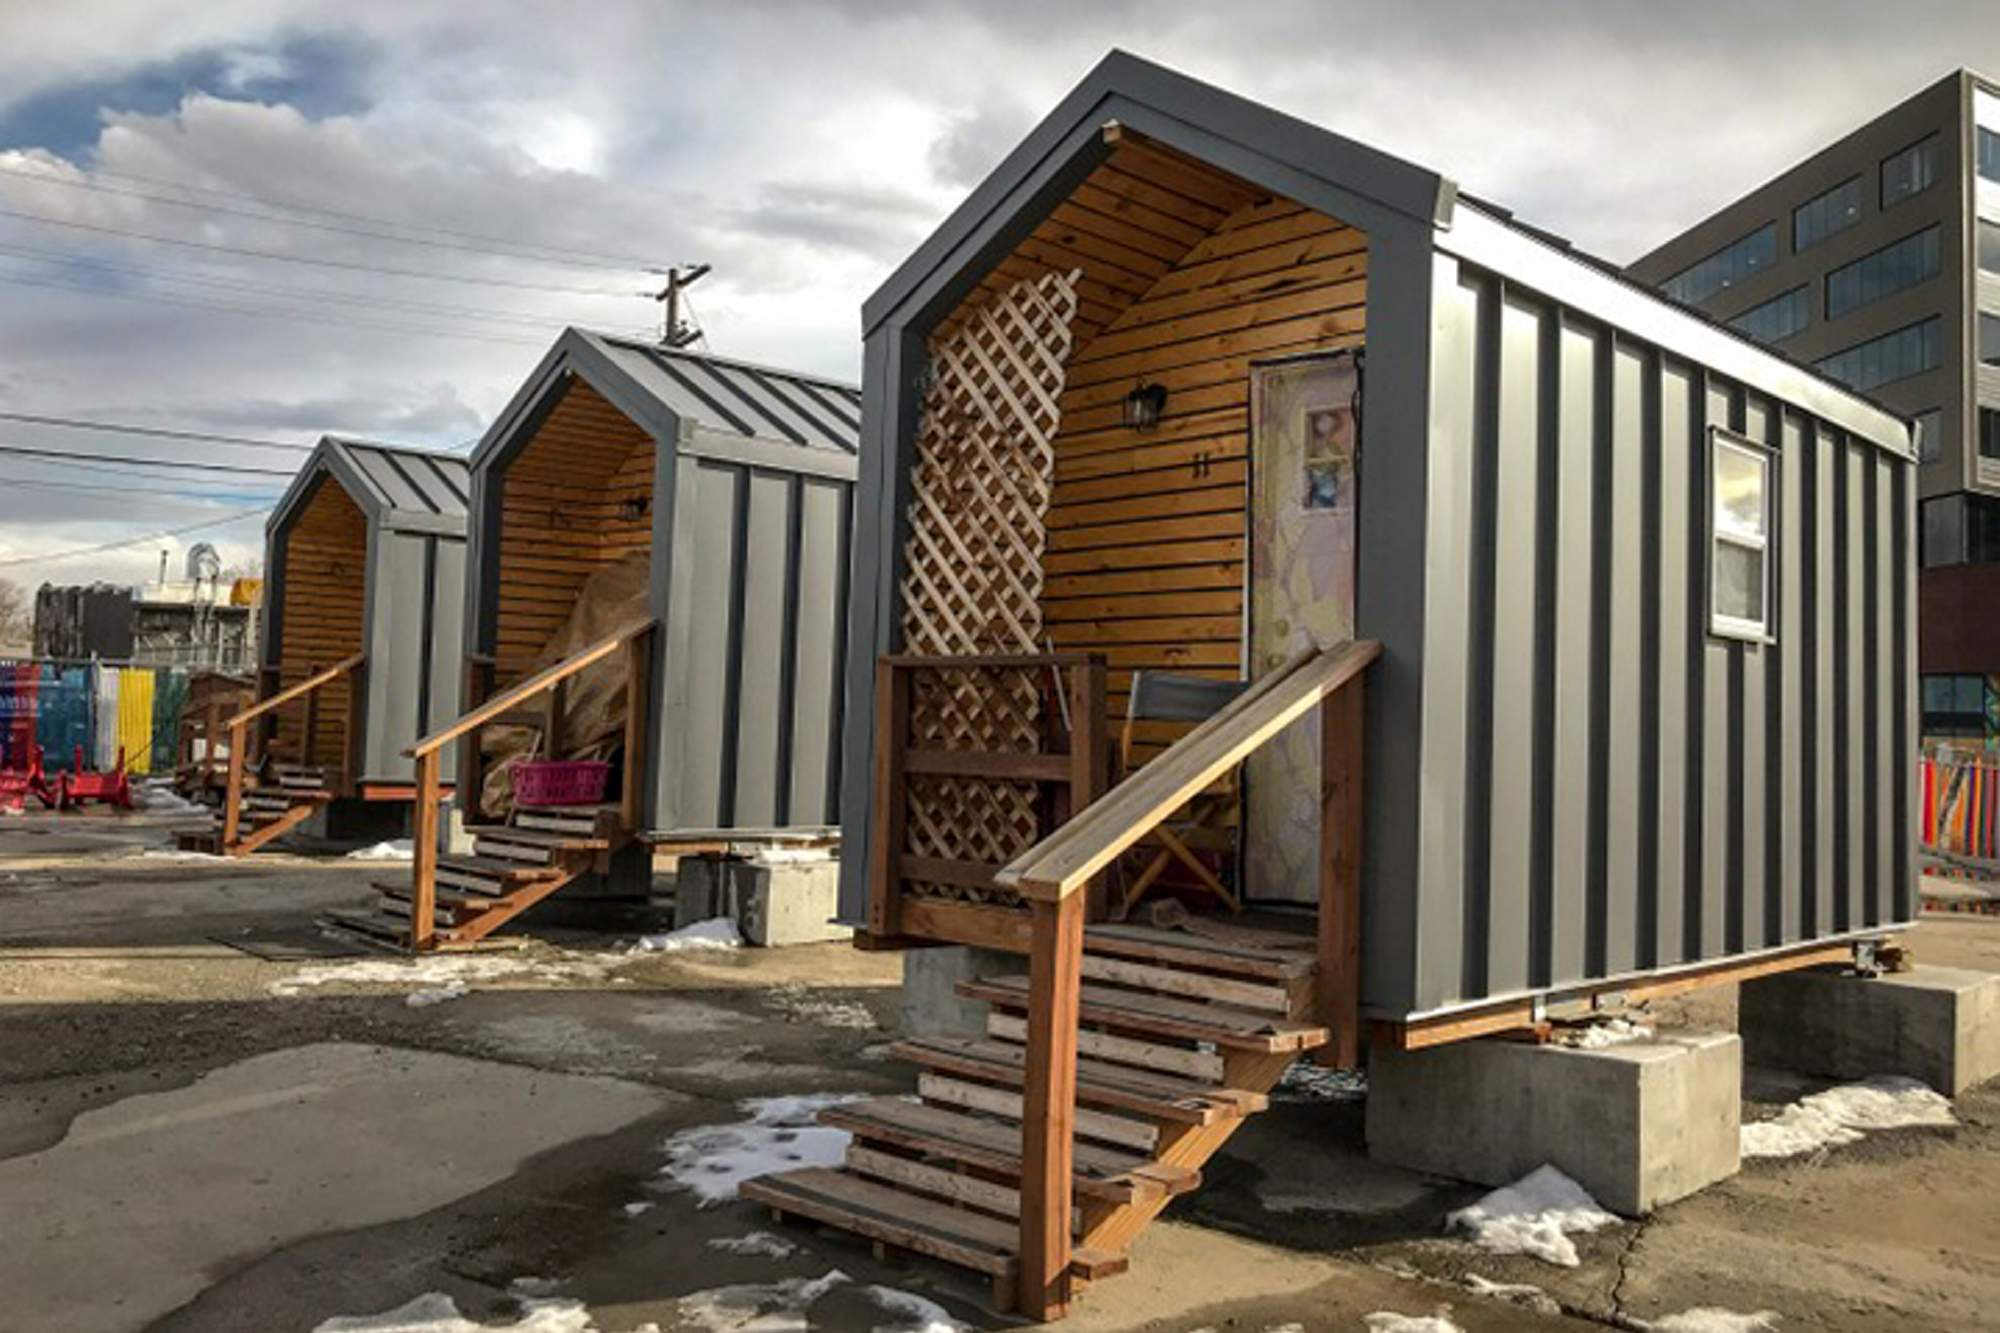 While Denver S Tiny Homes For The Homeless Help They May Not Be A